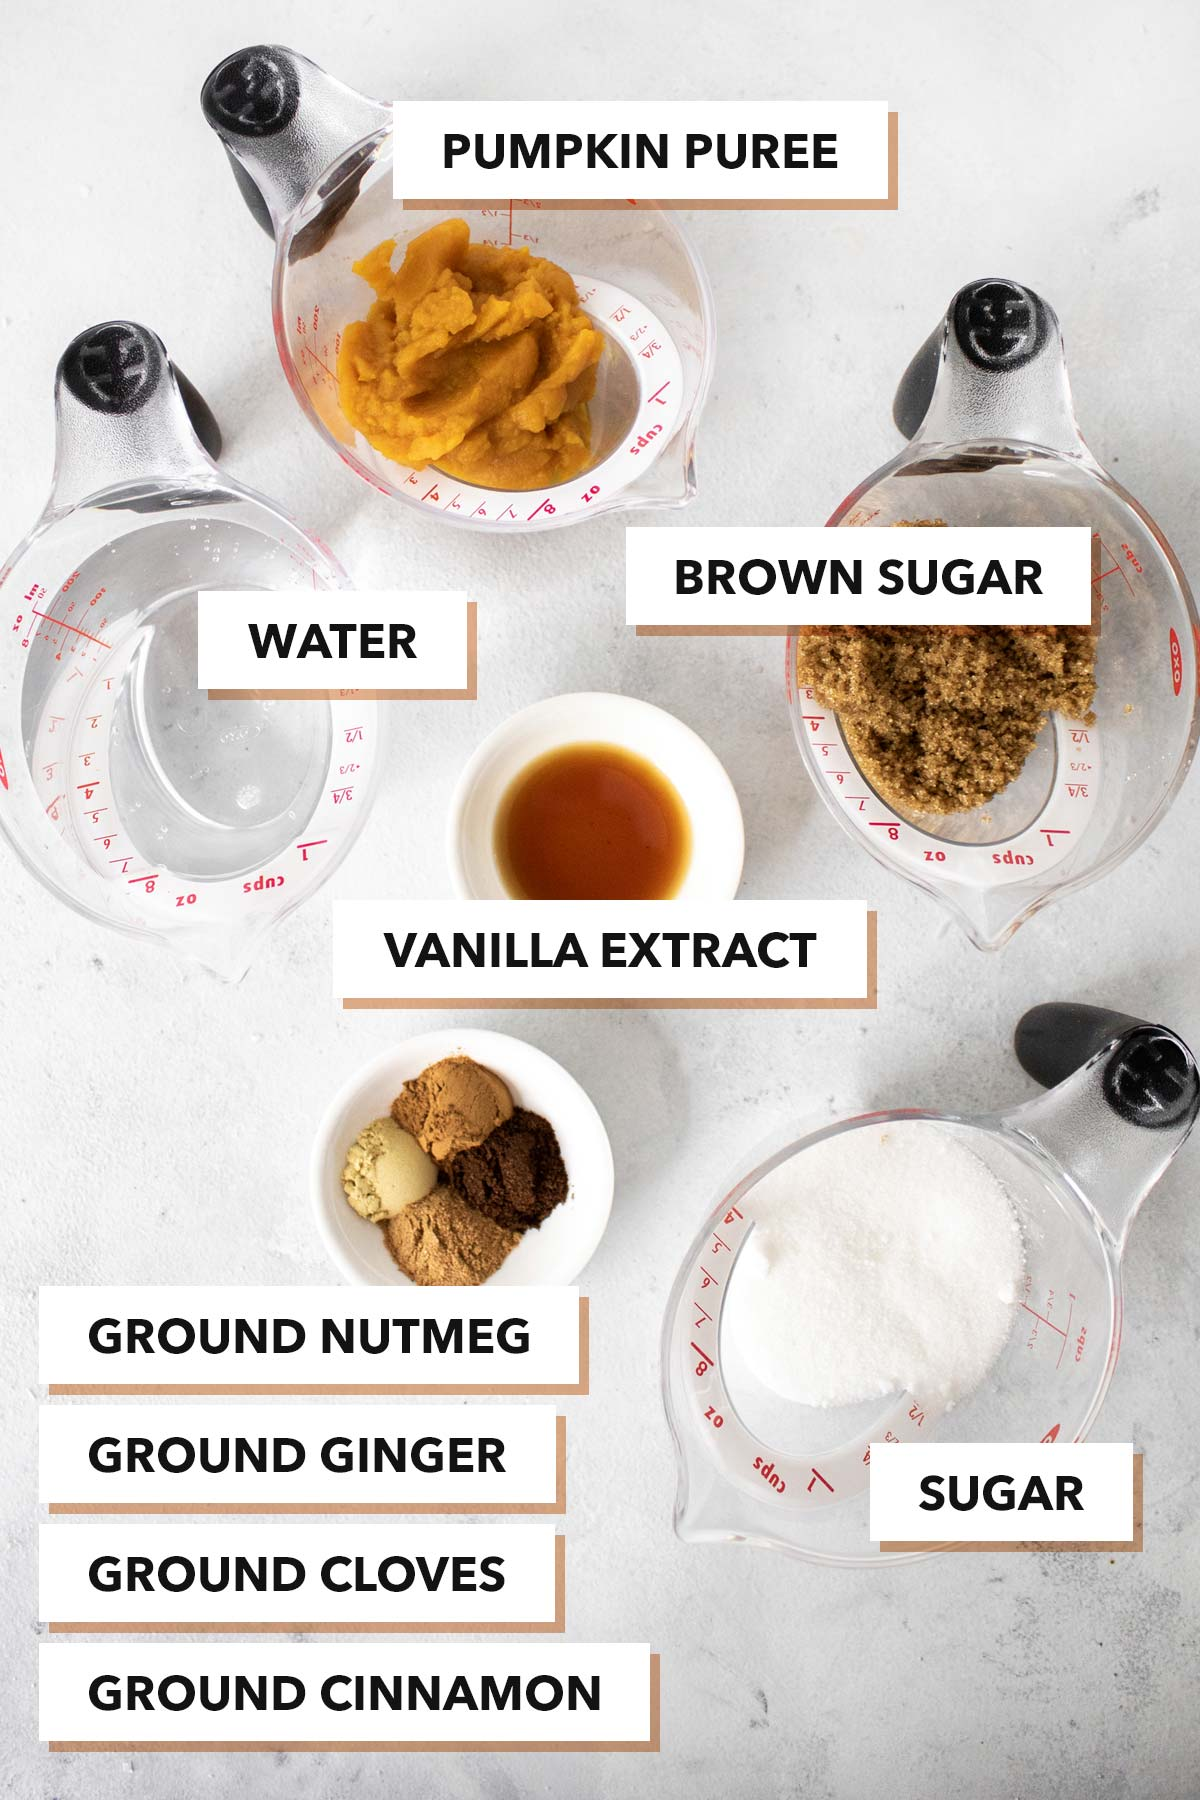 Pumpkin spice syrup ingredients.